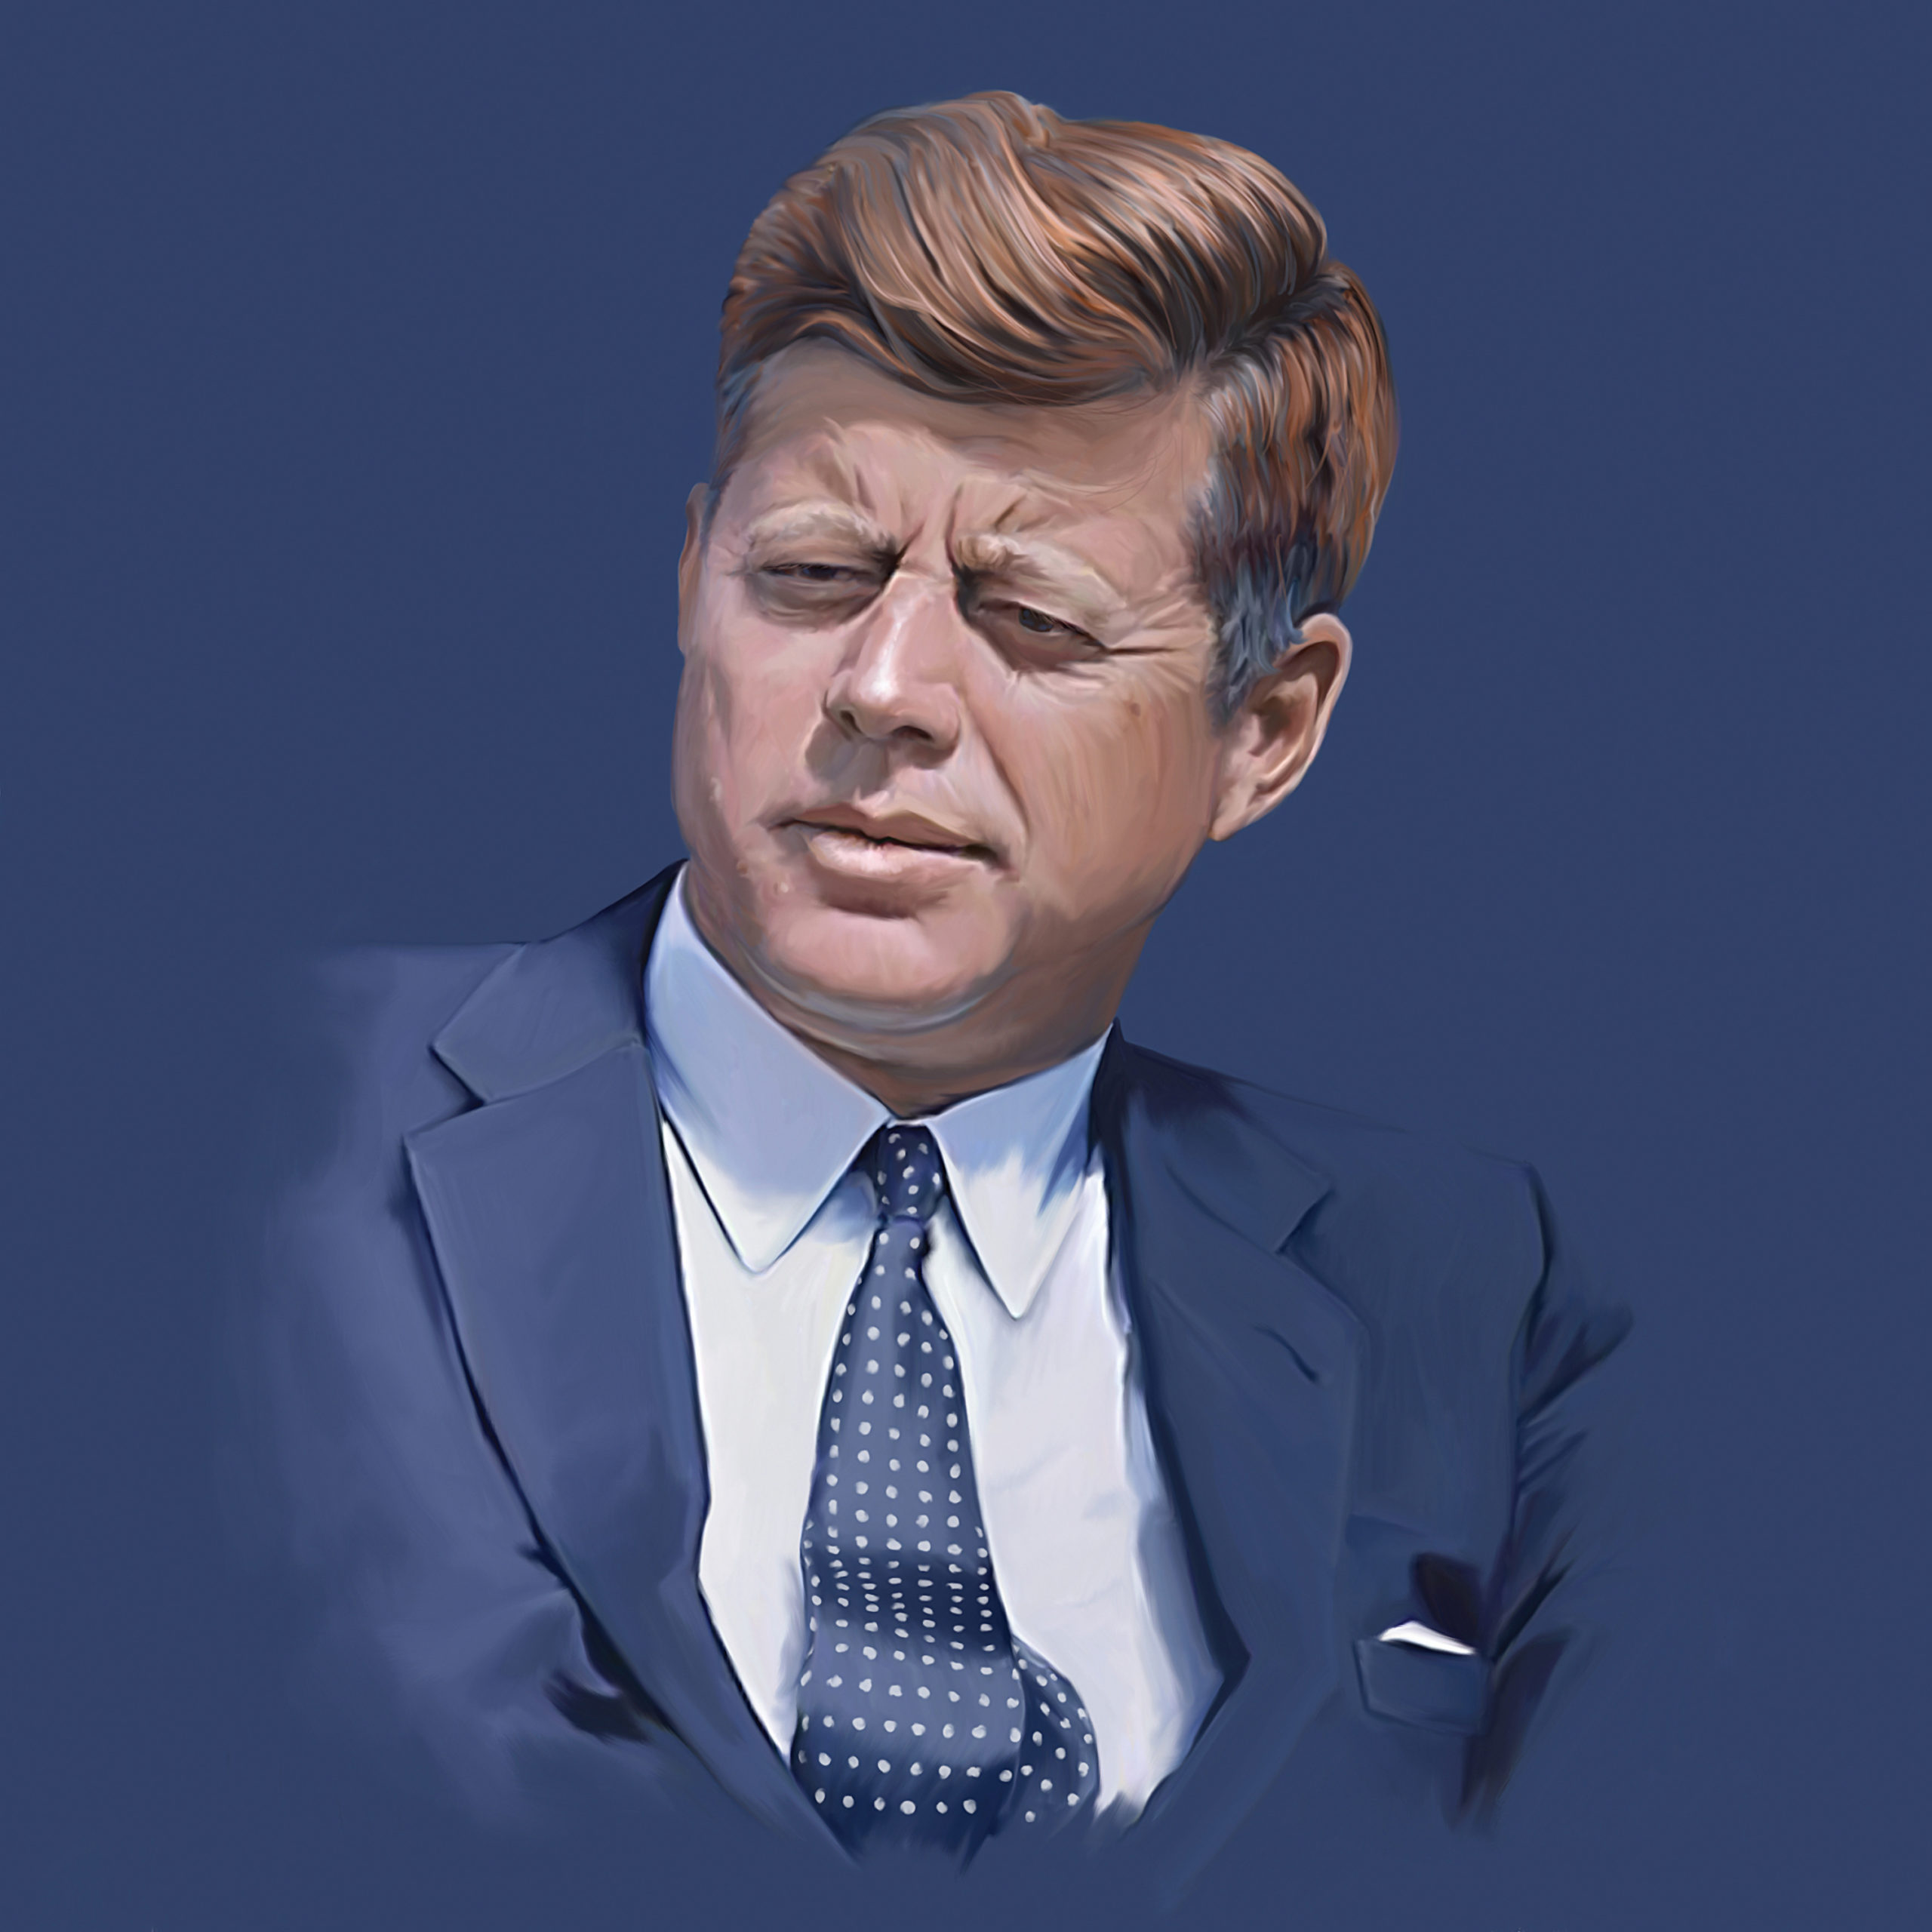 He, often referred to by his initials, was an American politician who served as the 35th president of the United States from January 1961 until his assassination in November 1963.